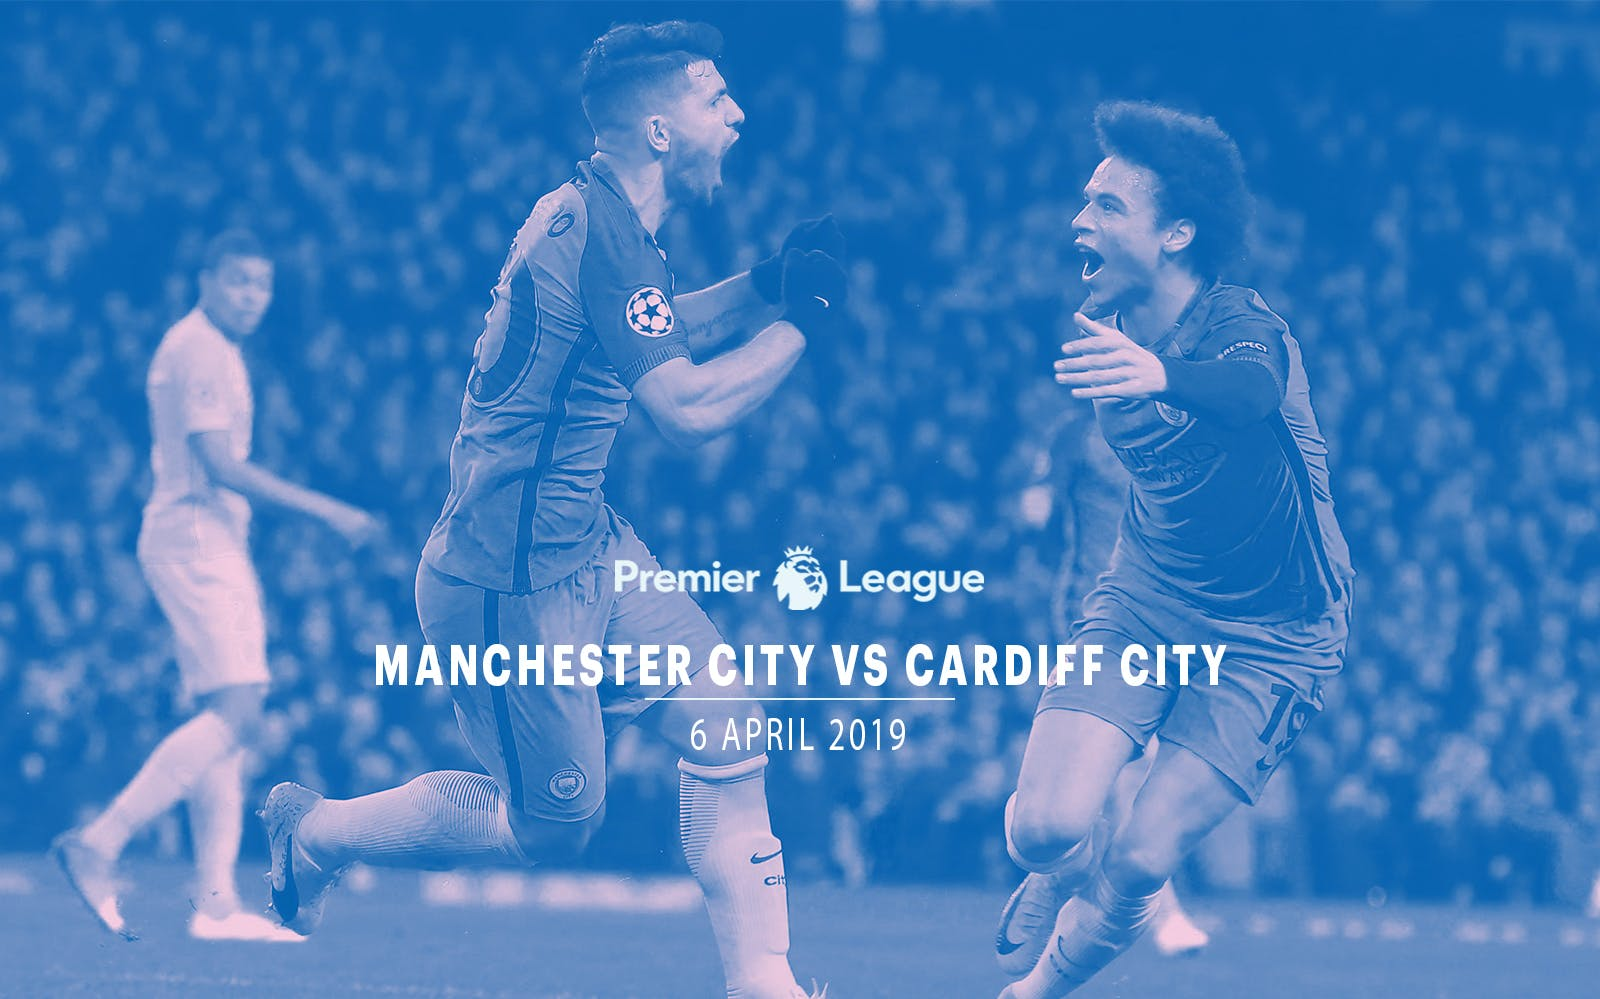 manchester city vs cardiff city-6th apr 2019-1